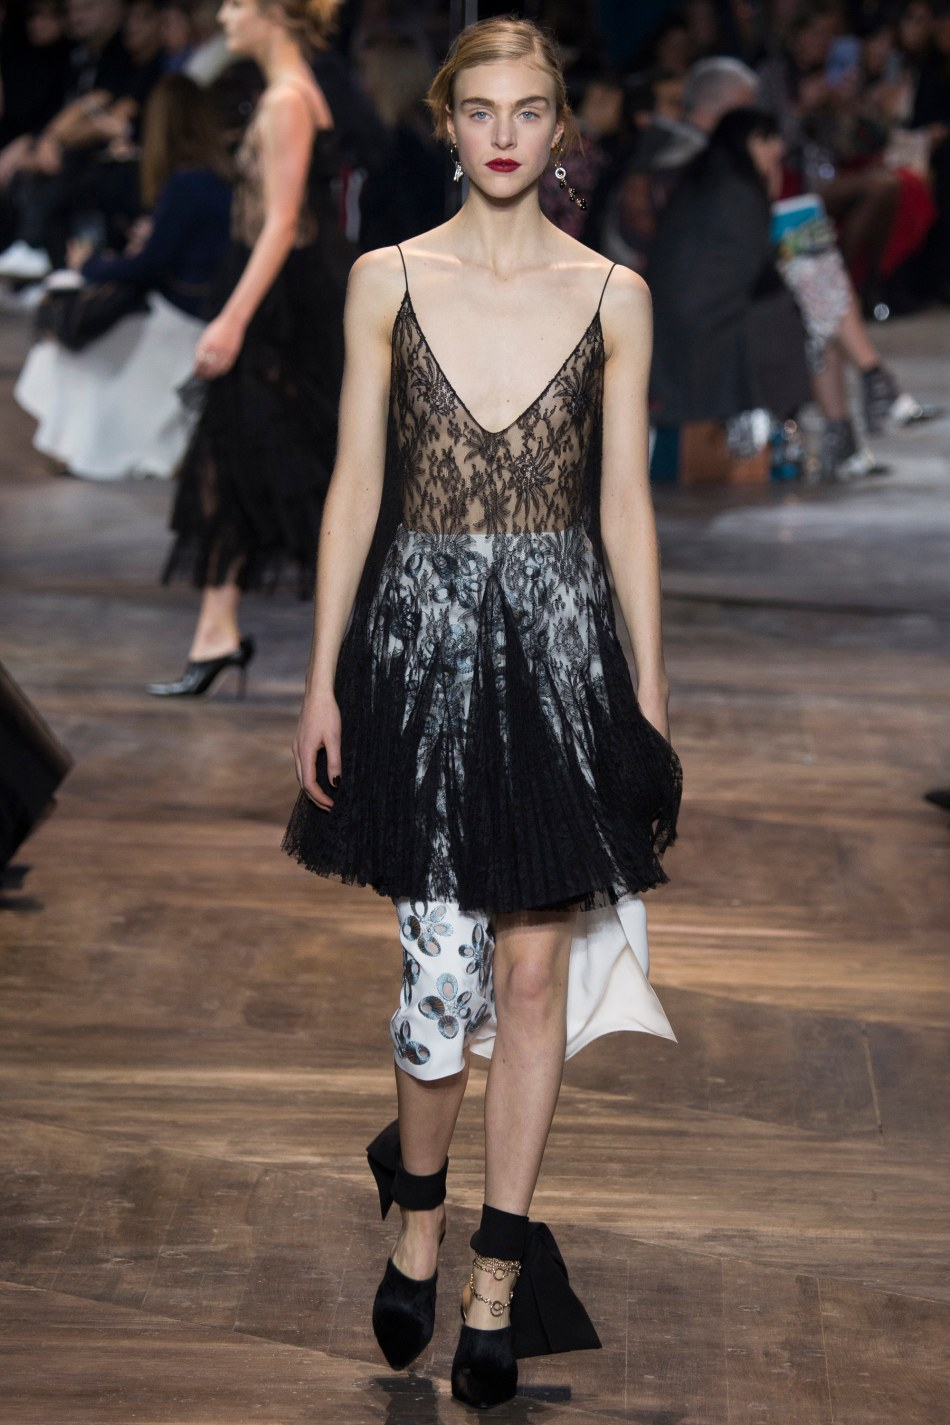 First Dior Couture show, Spring 2016, after Raf Simmons' departure